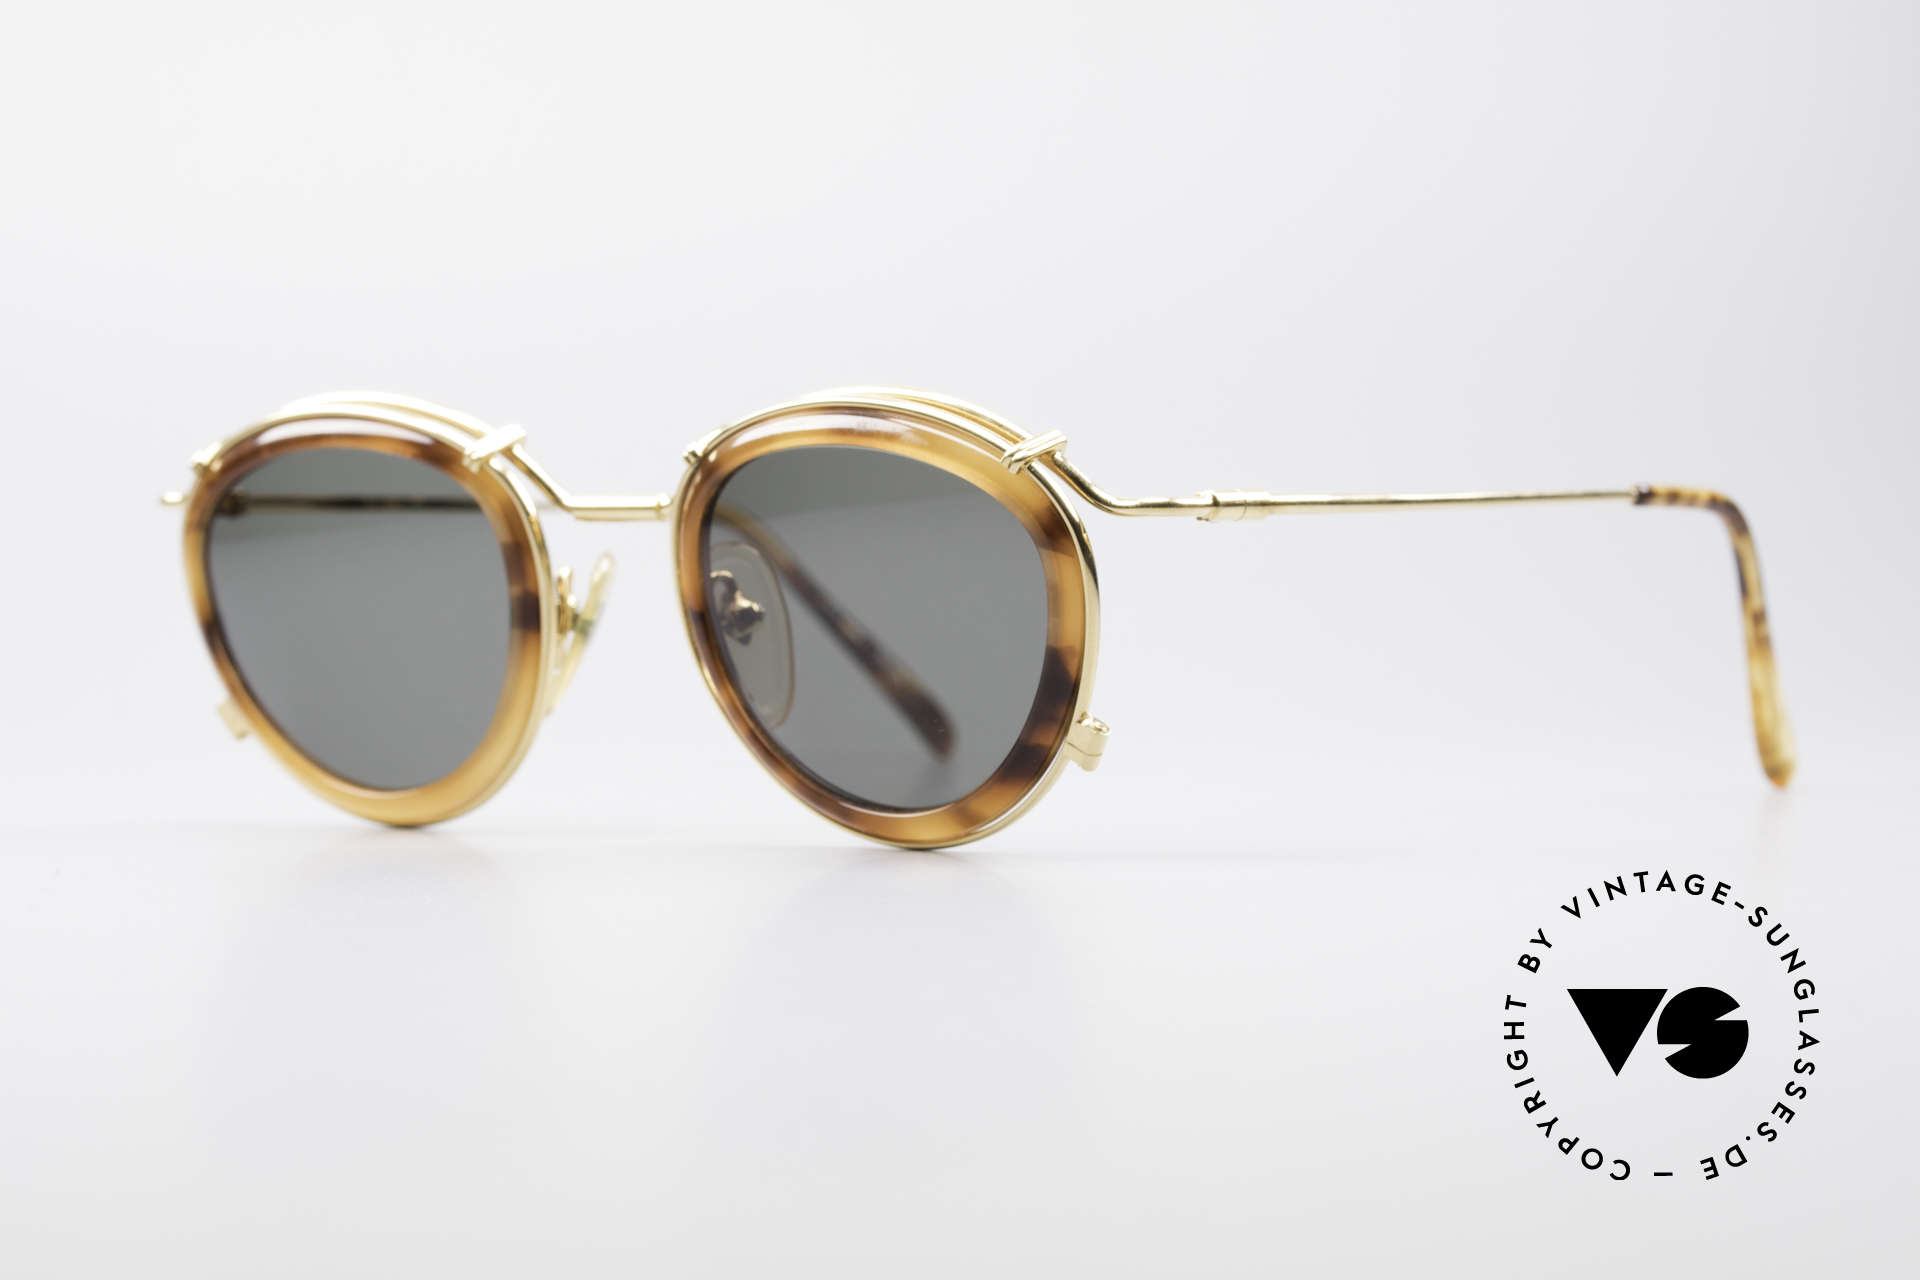 Jean Paul Gaultier 56-2271 Steampunk Designer Shades, GOLD-PLATED metal frame with tortoise plastic rings, Made for Men and Women